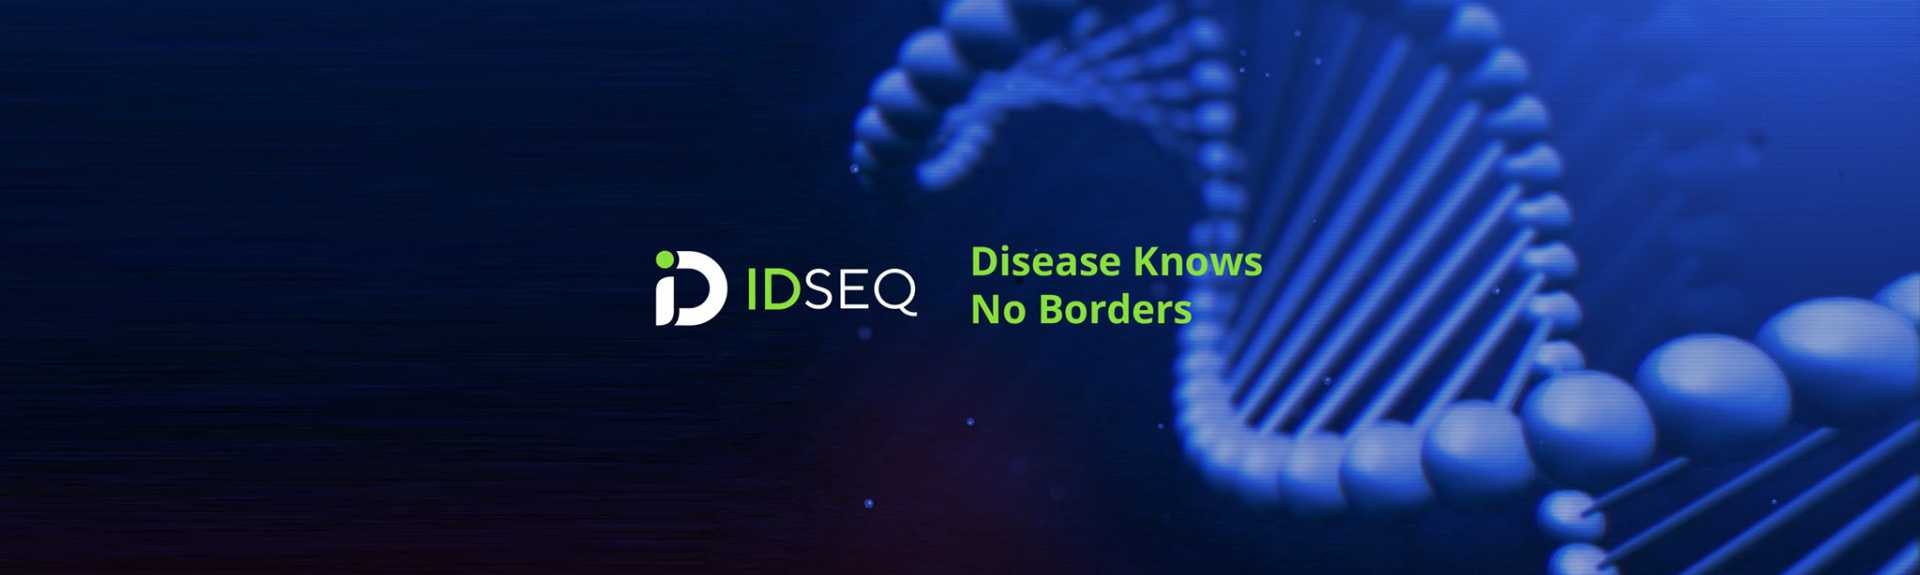 Disease Knows No Borders - by IDseq